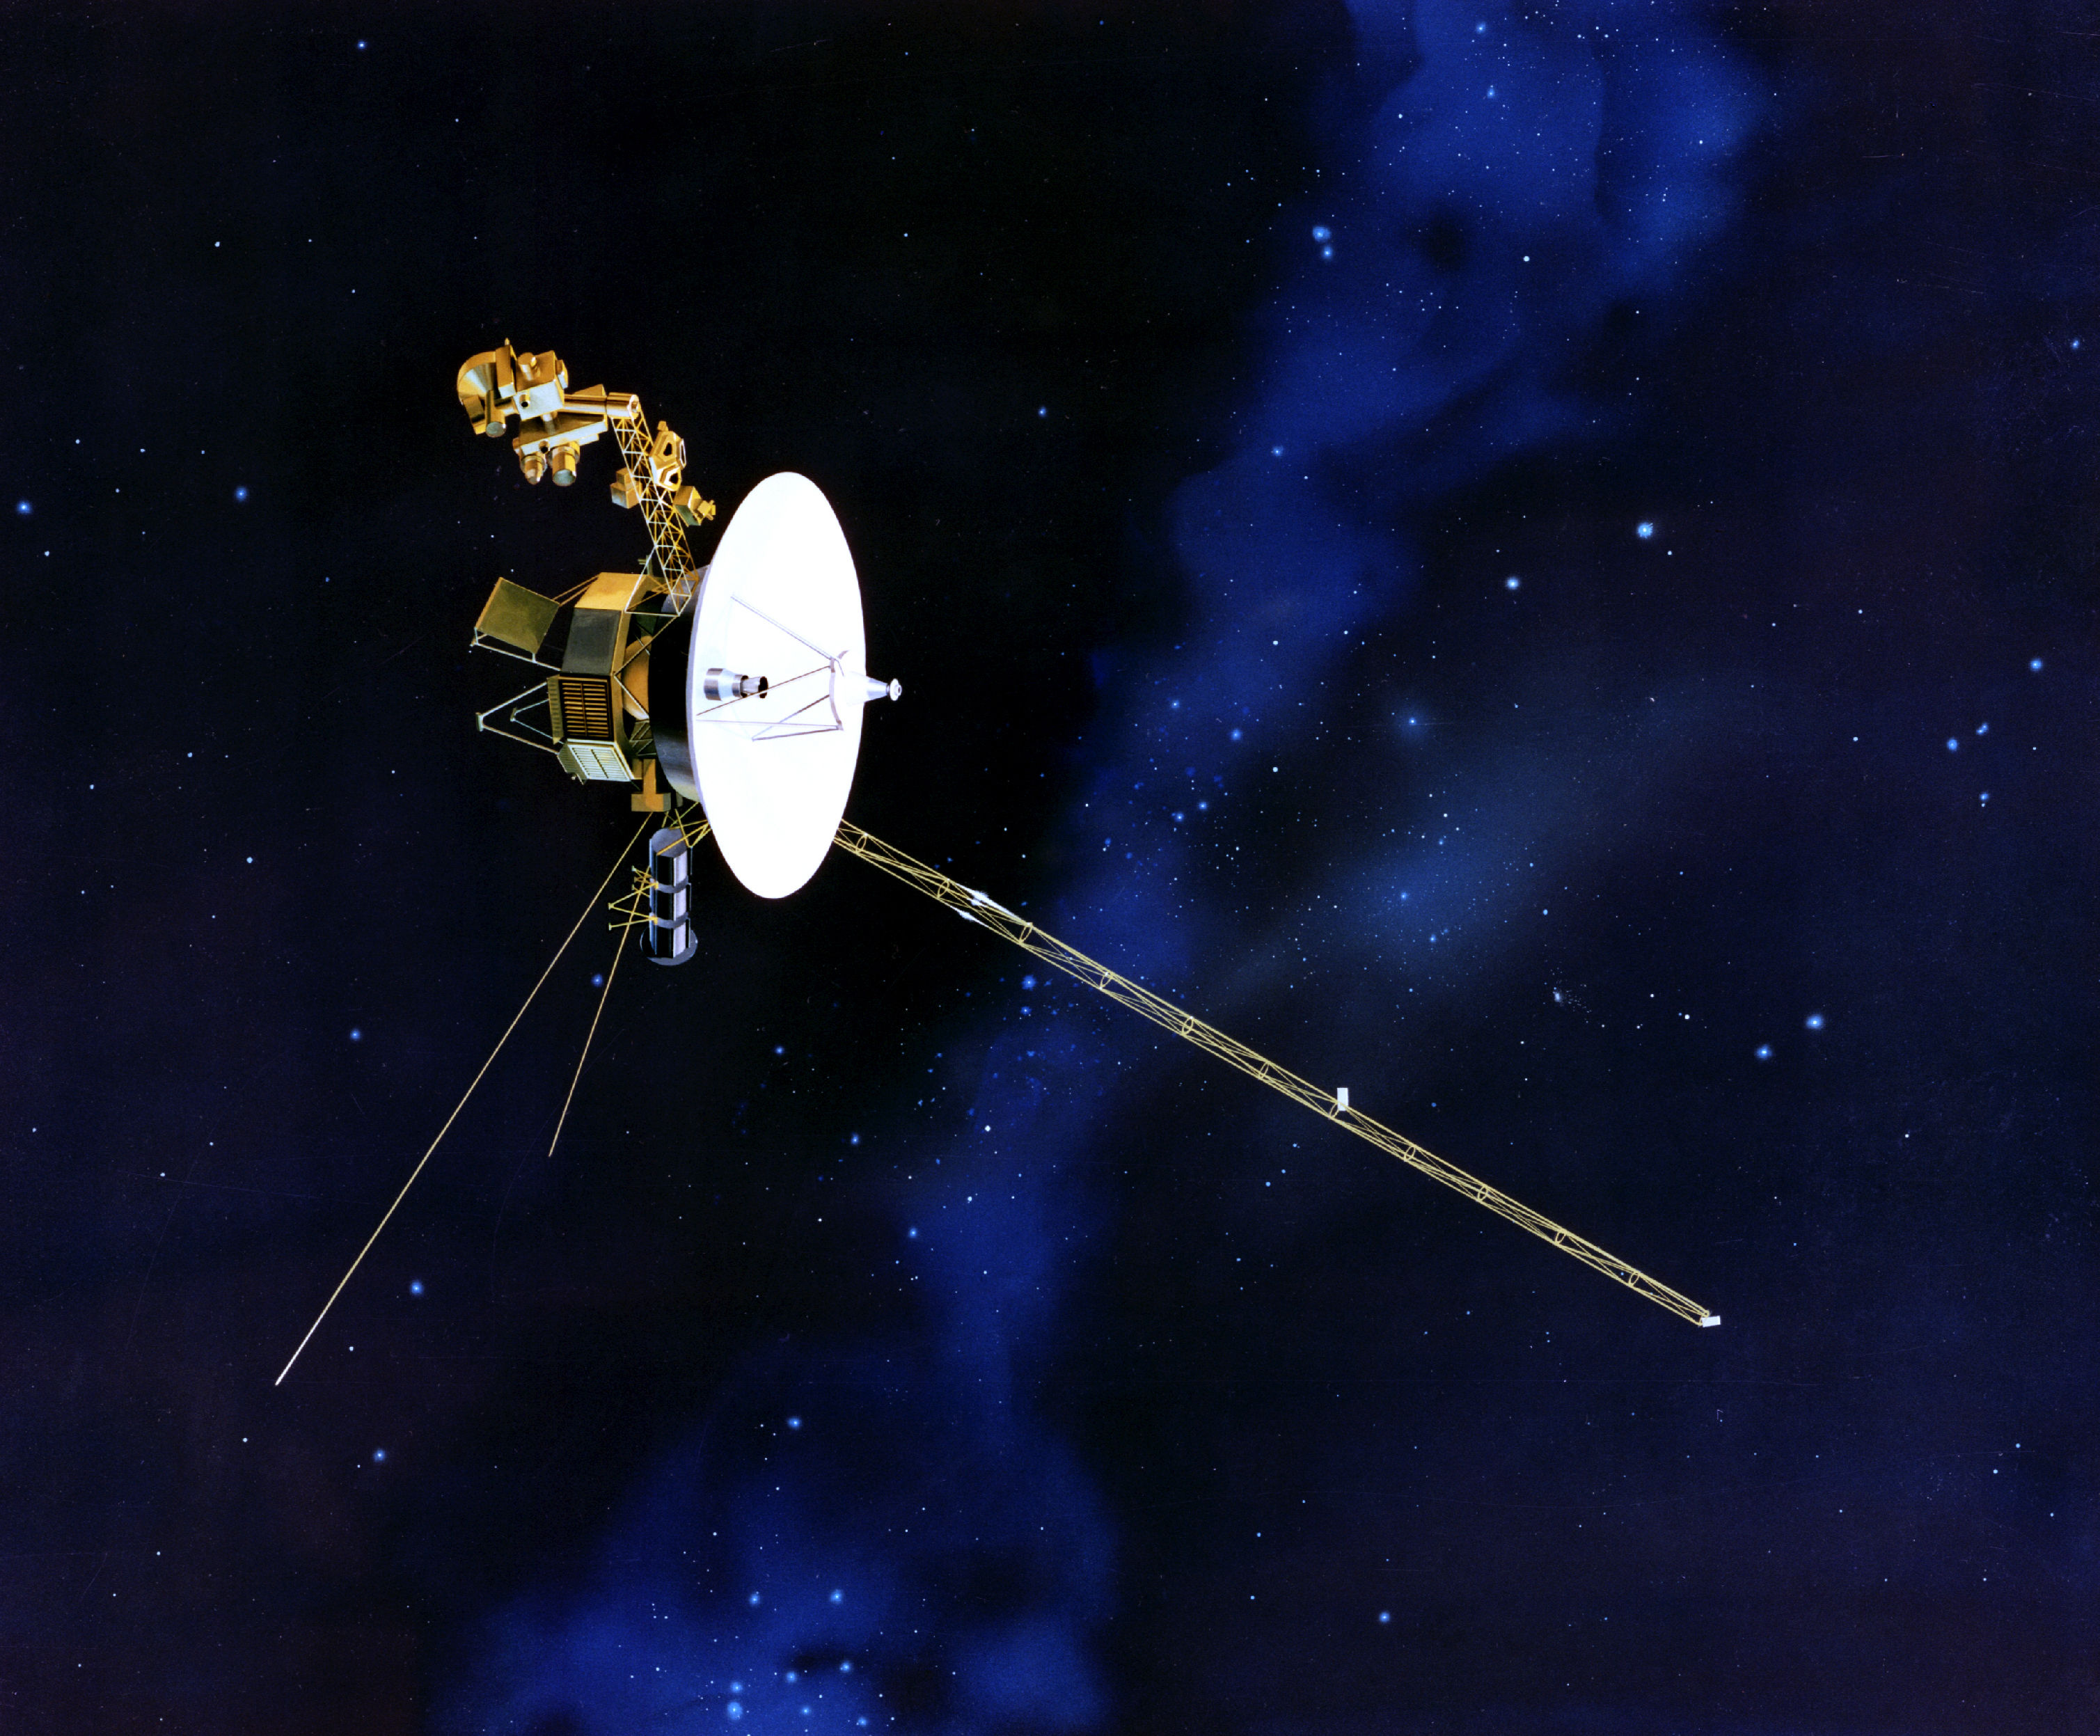 Today in history� Voyager sets out on epic journey